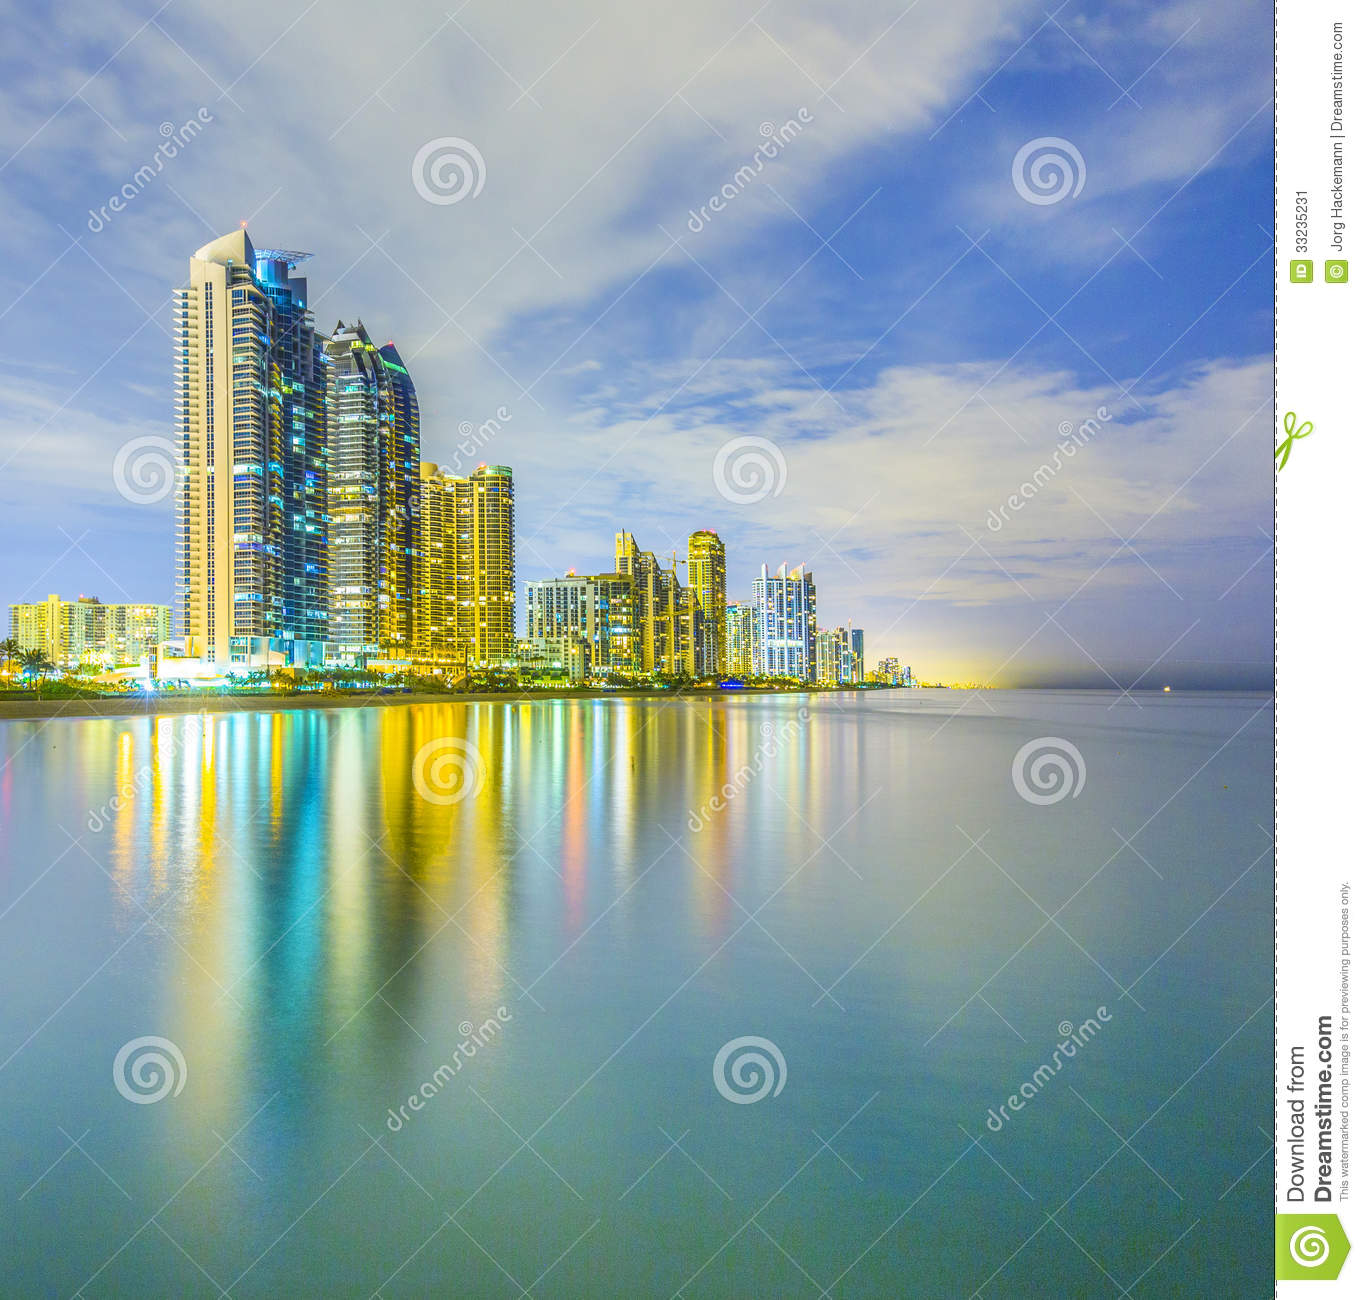 Skyline Of Sunny Isles Beach By Night With Reflections At The.